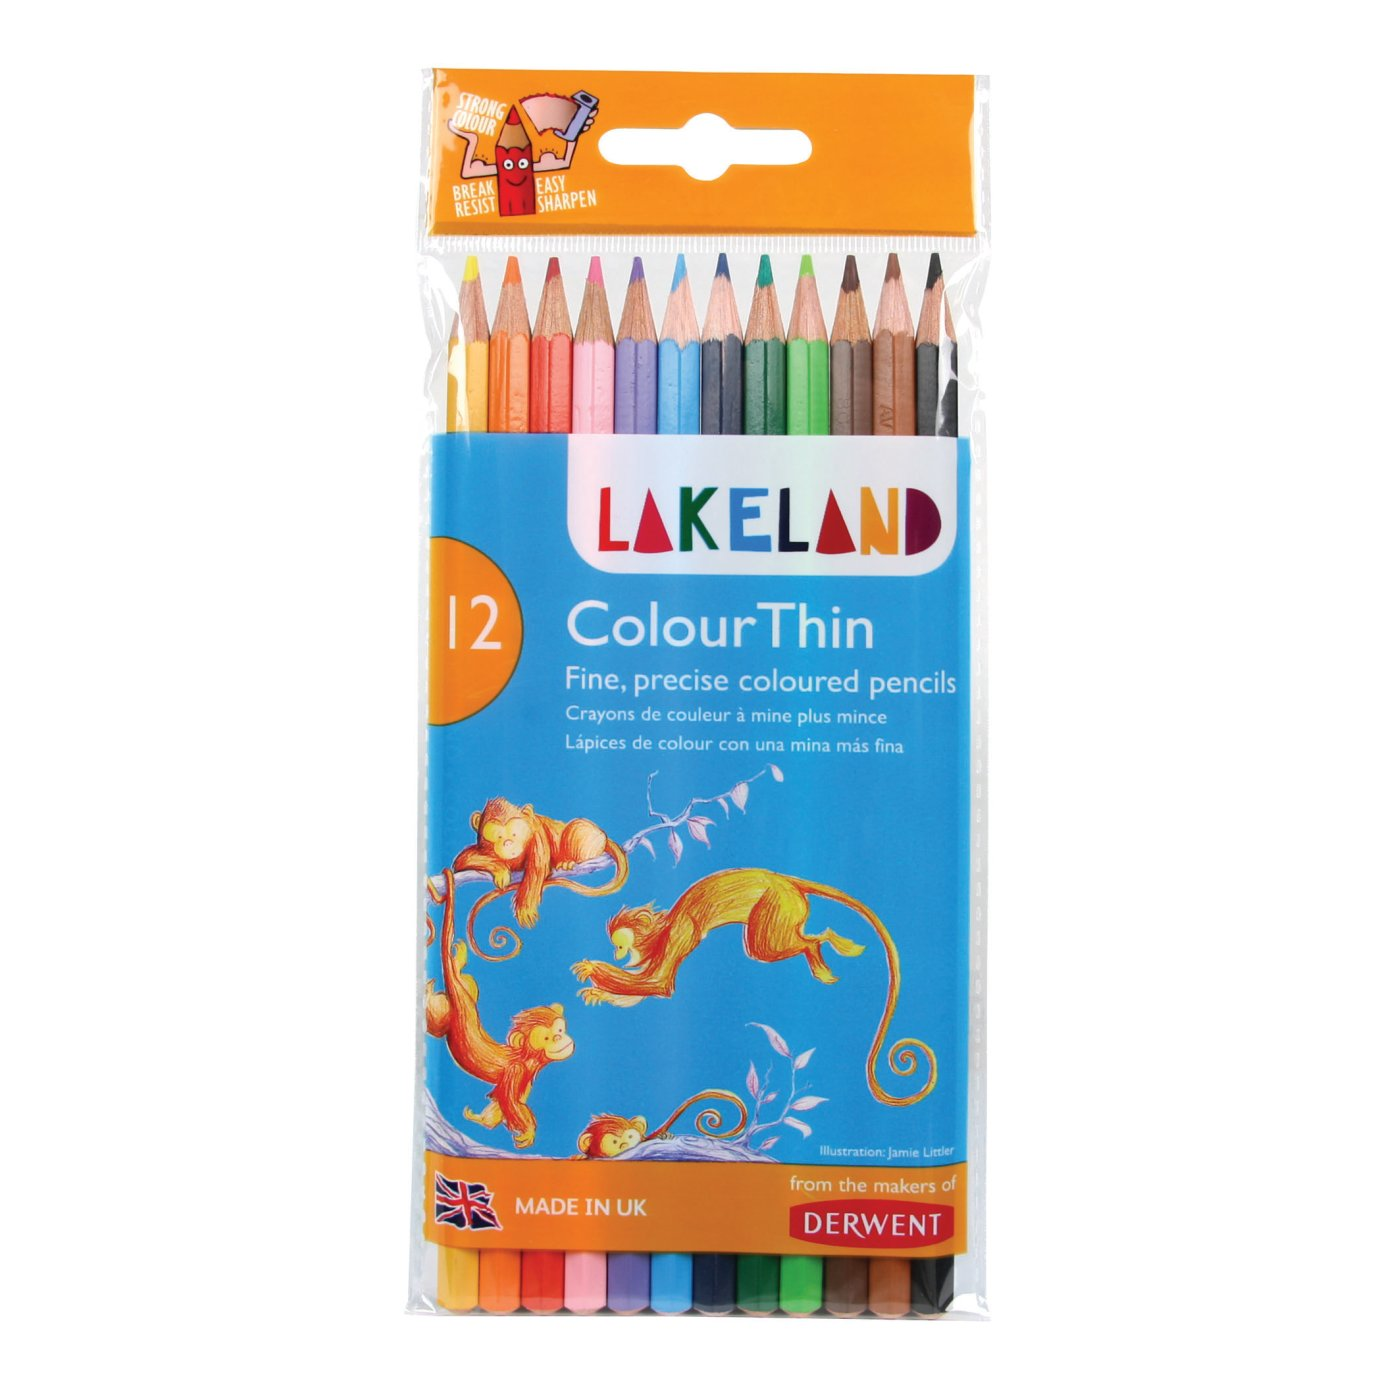 Farveblyanter Derwent Lakeland Colour Thin 12stk. 700077